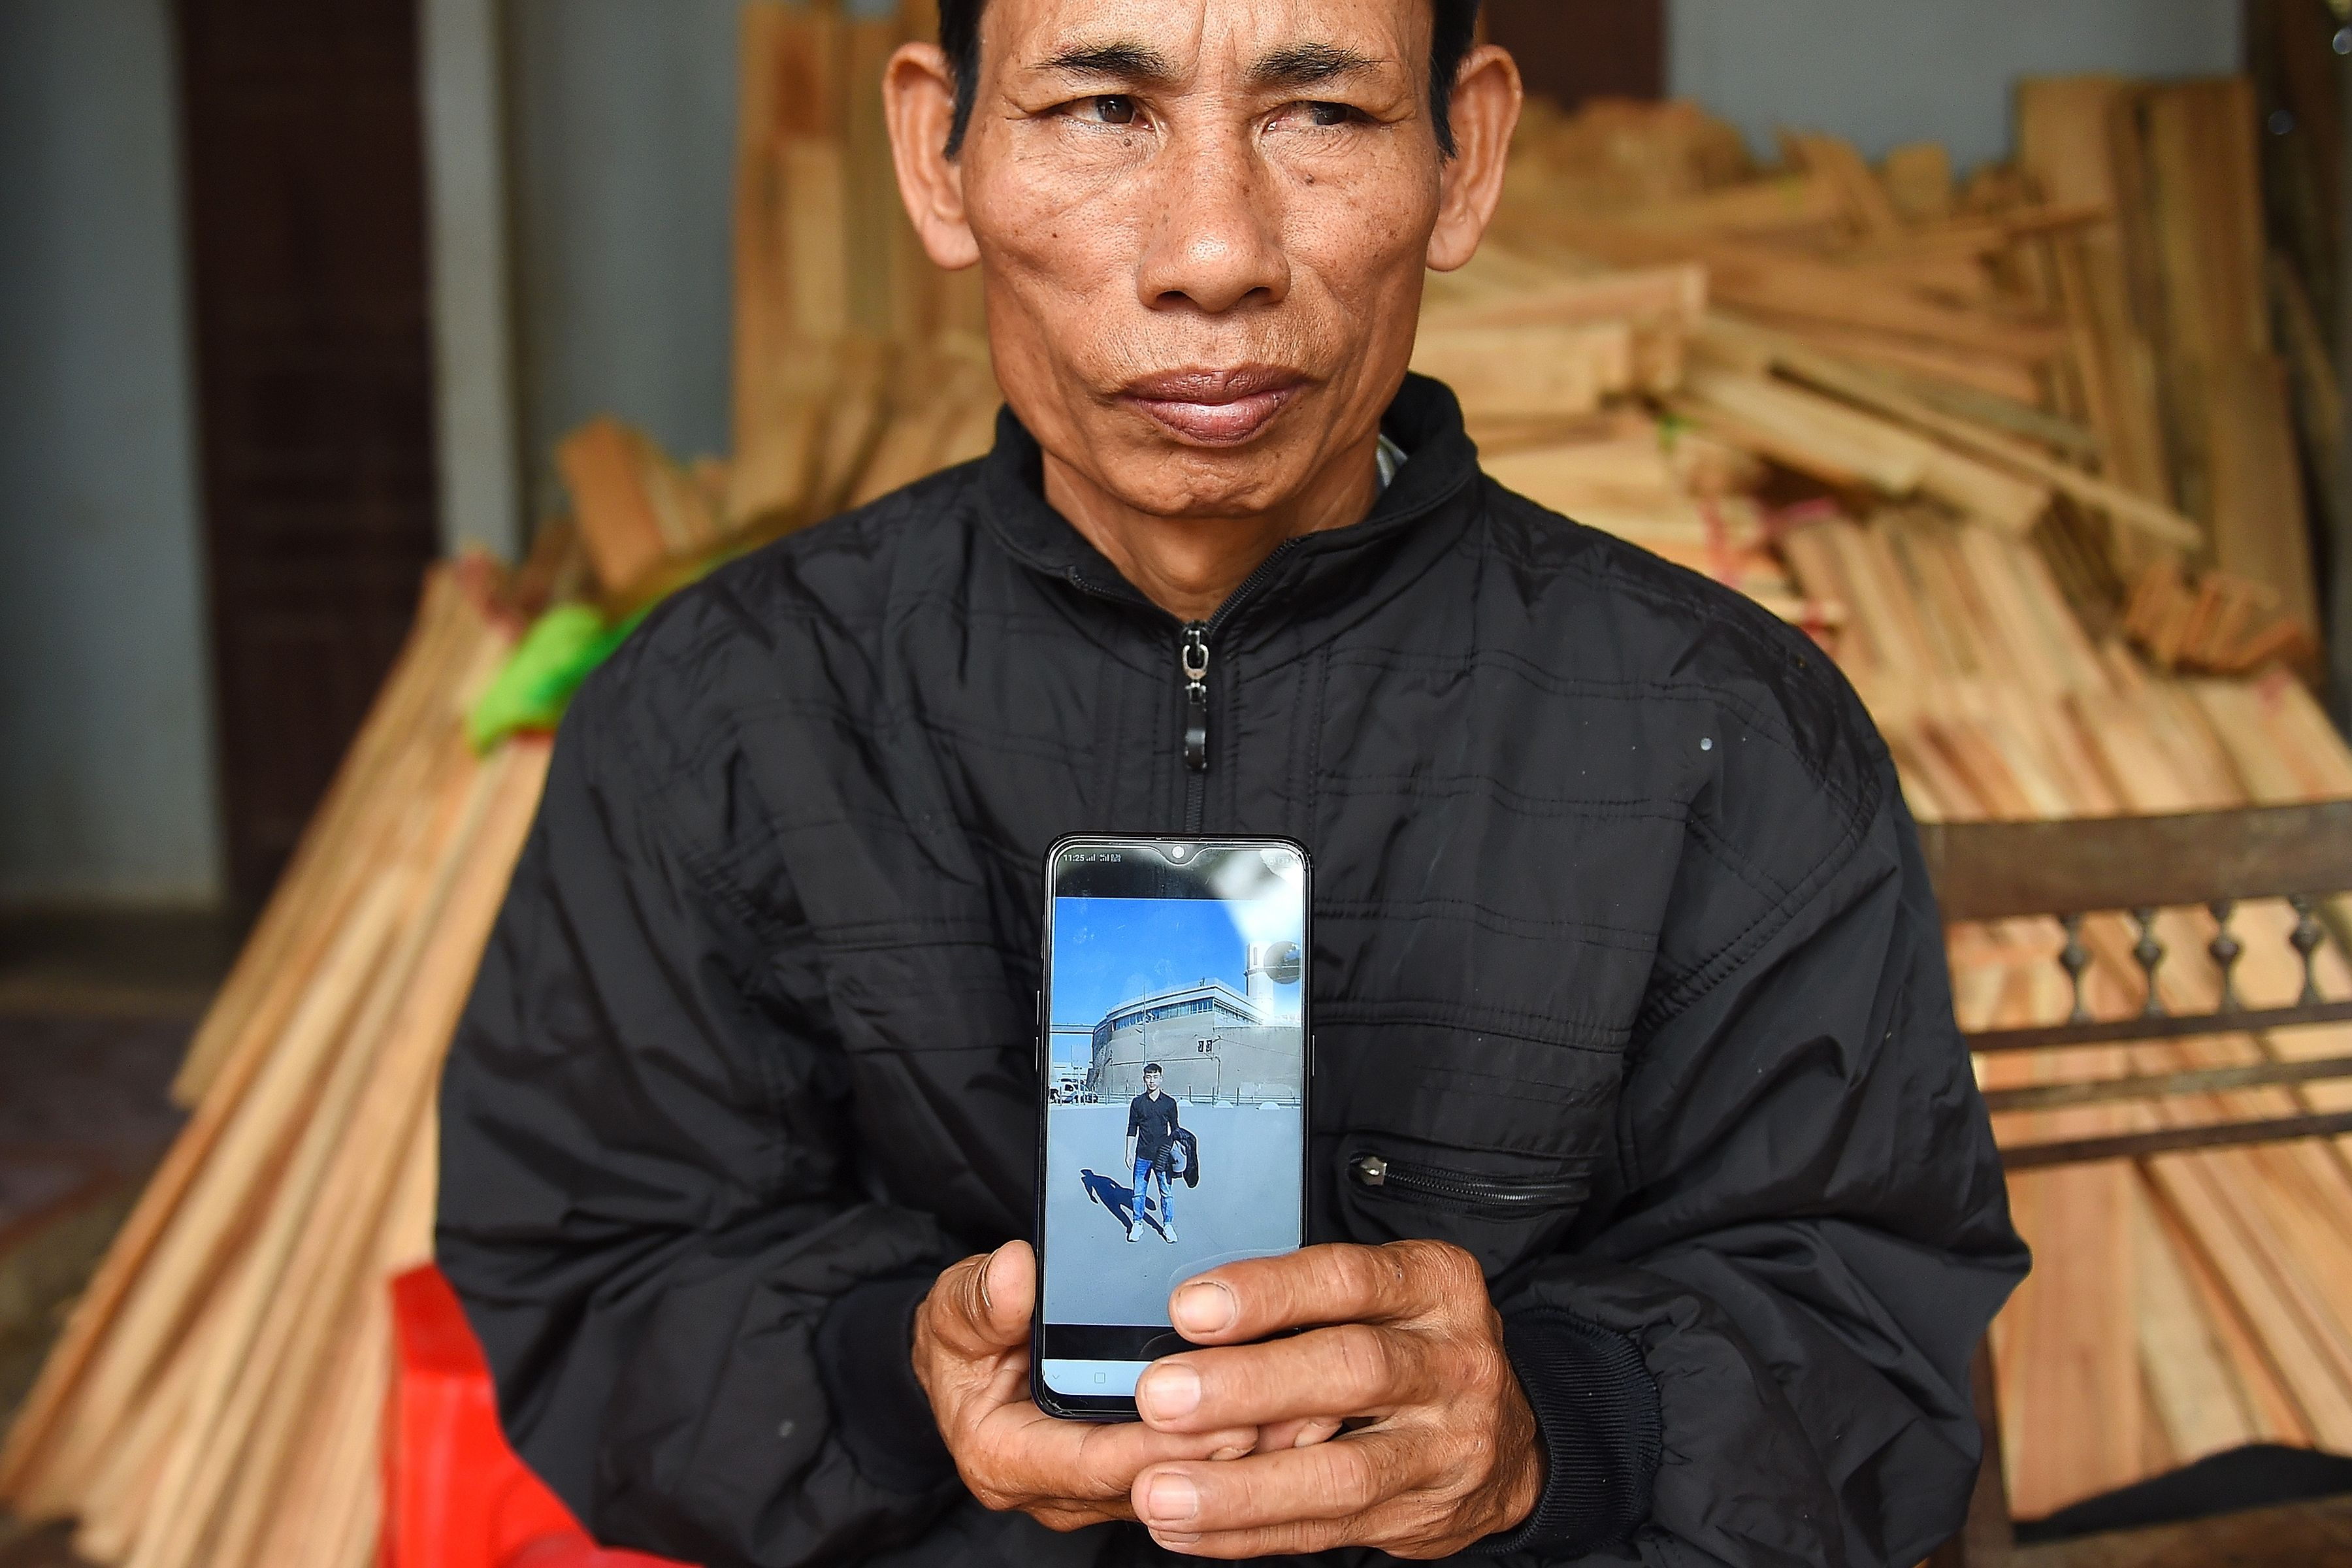 Nguyen Dinh Gia, father of 20-year-old Nguyen Dinh Luong who is feared to be among the 39 people found dead in a truck in Britain, poses with his son's photograph at their house in Can Loc district of Vietnam's Ha Tinh province on October 29, 2019.(NHAC NGUYEN/AFP via Getty Images)